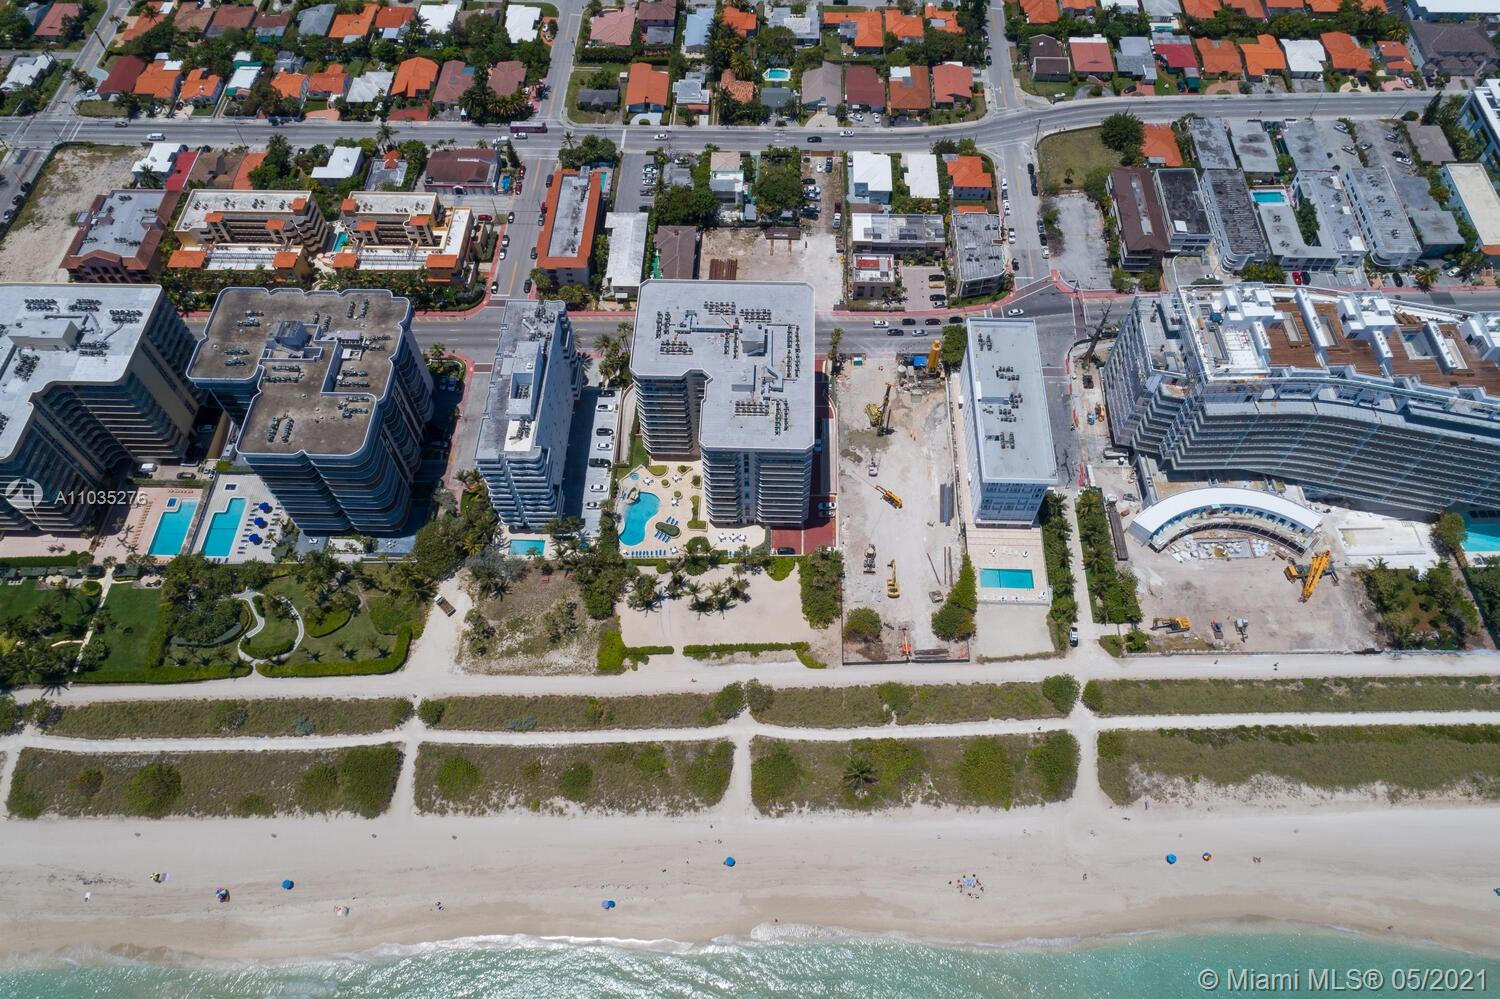 Photo of 8925 Collins Ave #4F, Surfside, Florida, 33154 - Aerial view.